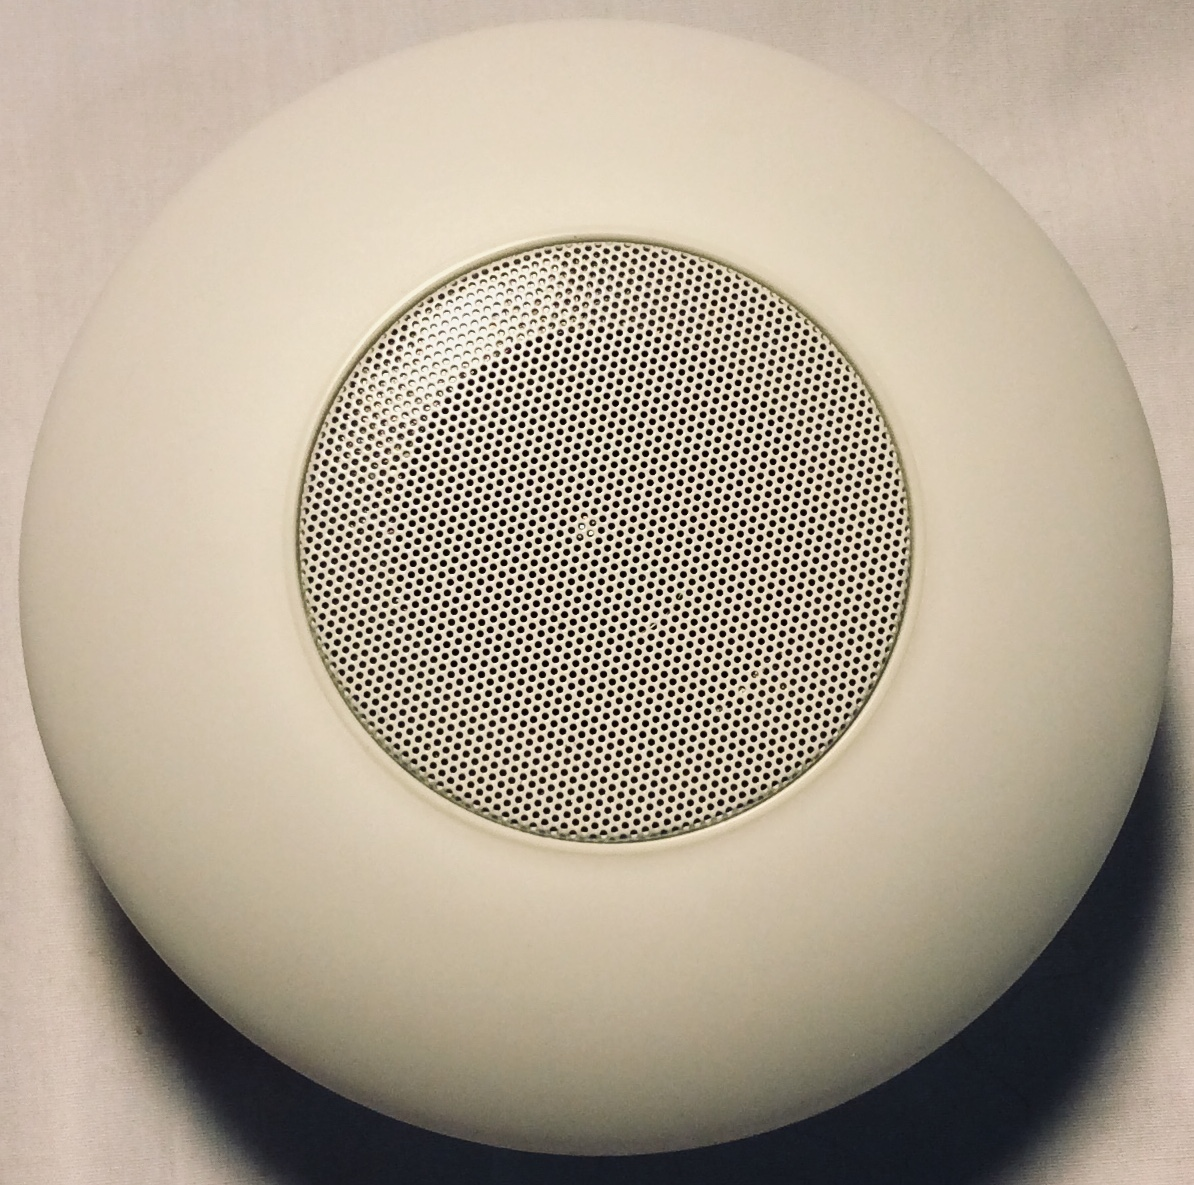 Lighting Ever LTD. Bluetooth Speaker